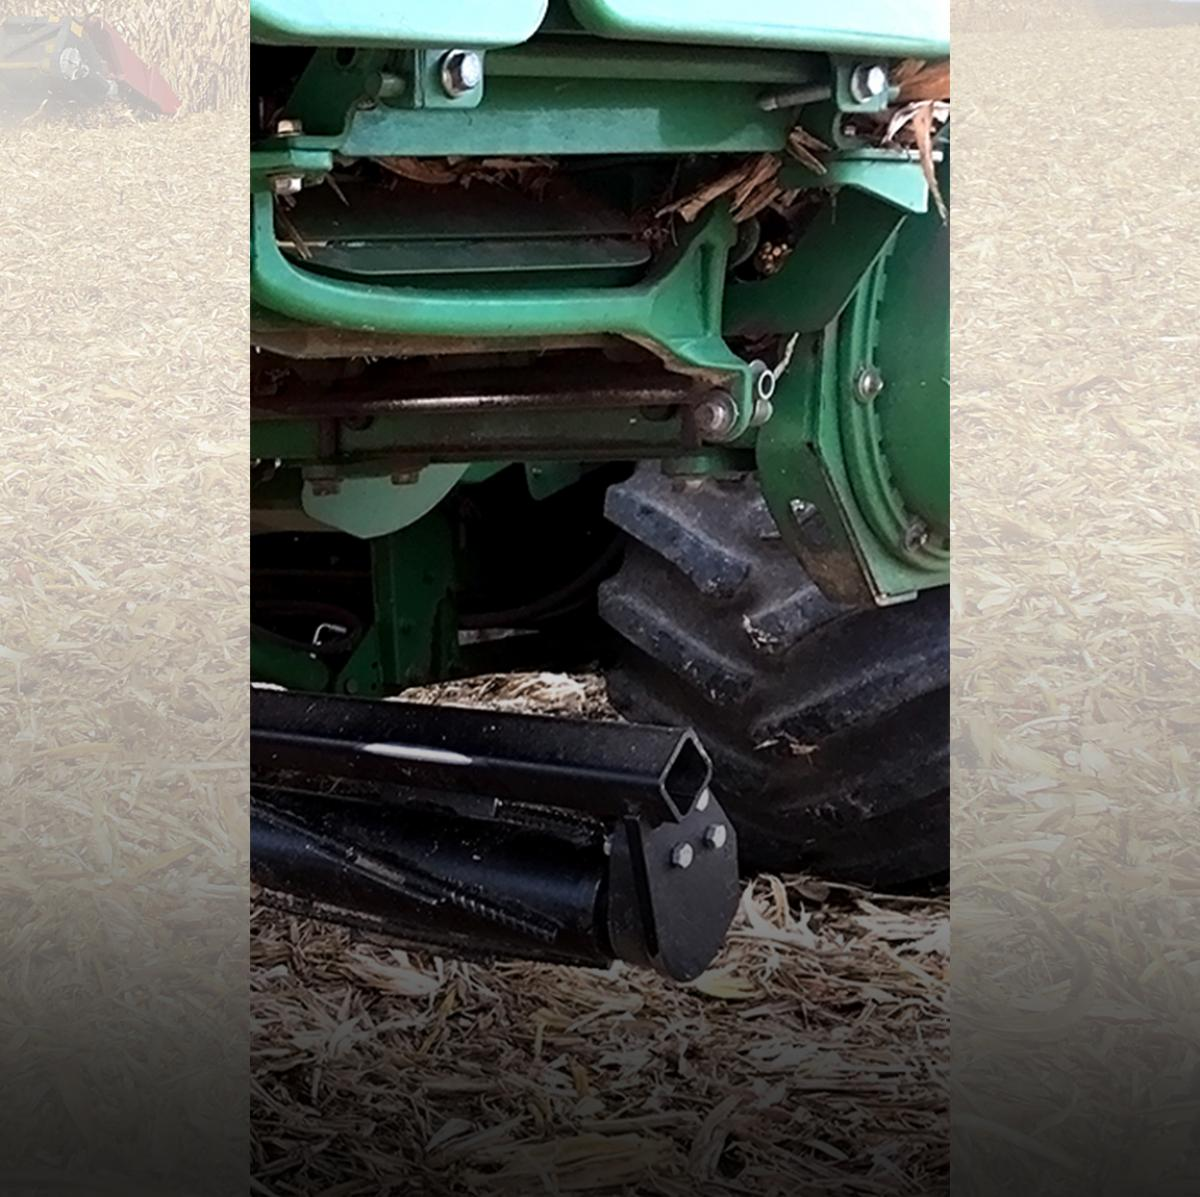 Not only does the Devastator crimp and crush stalks, it also saves major wear and tear on tires.